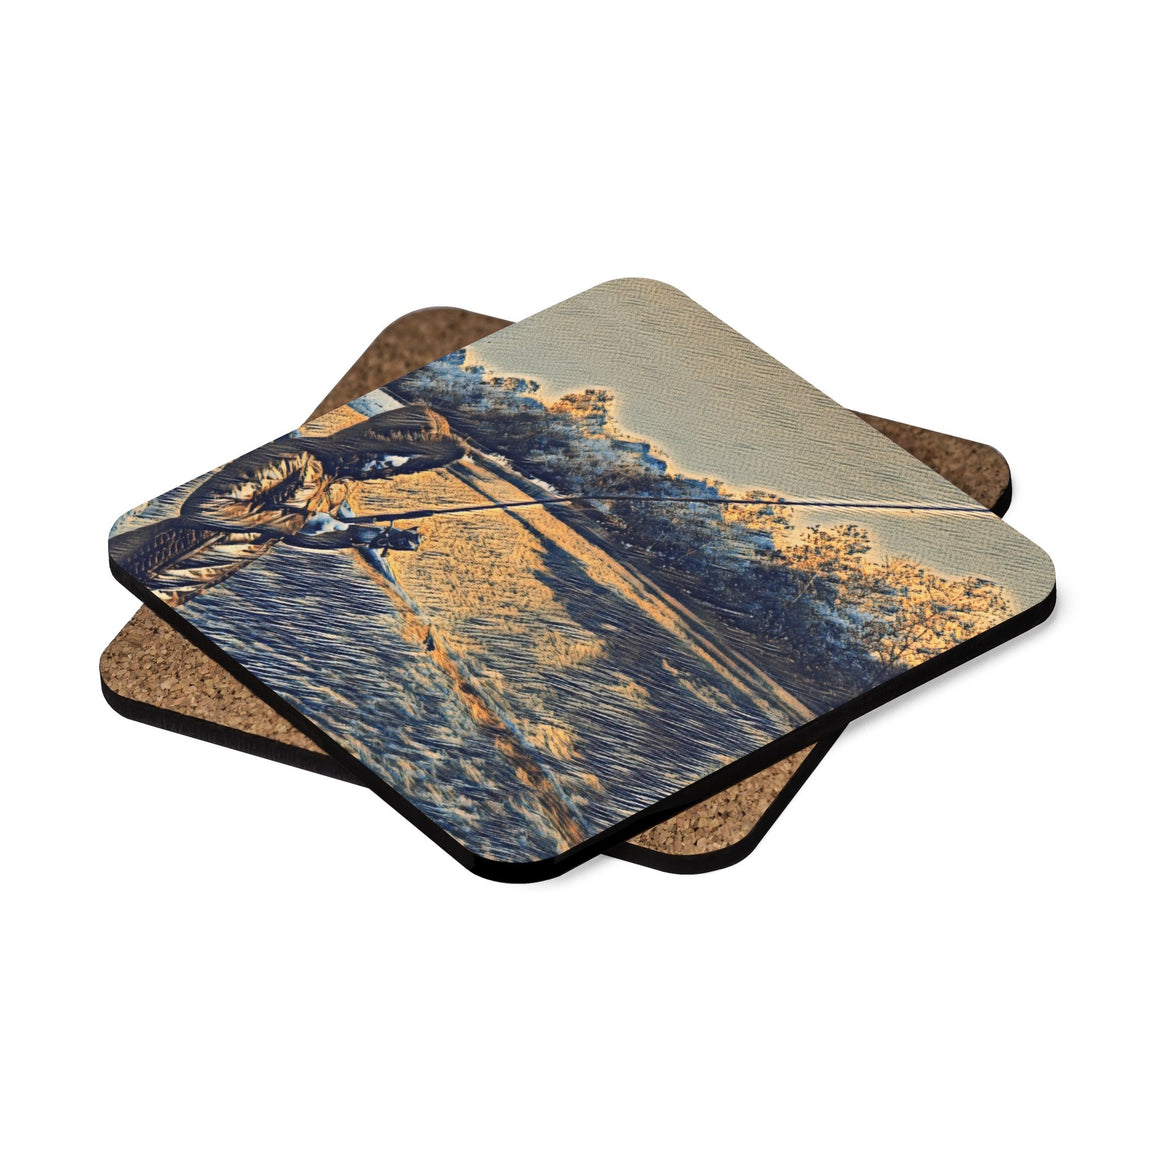 Levi Thang Fishing Design 31 Square Hardboard Coaster Set - 4pcs - I Am A Dreamer